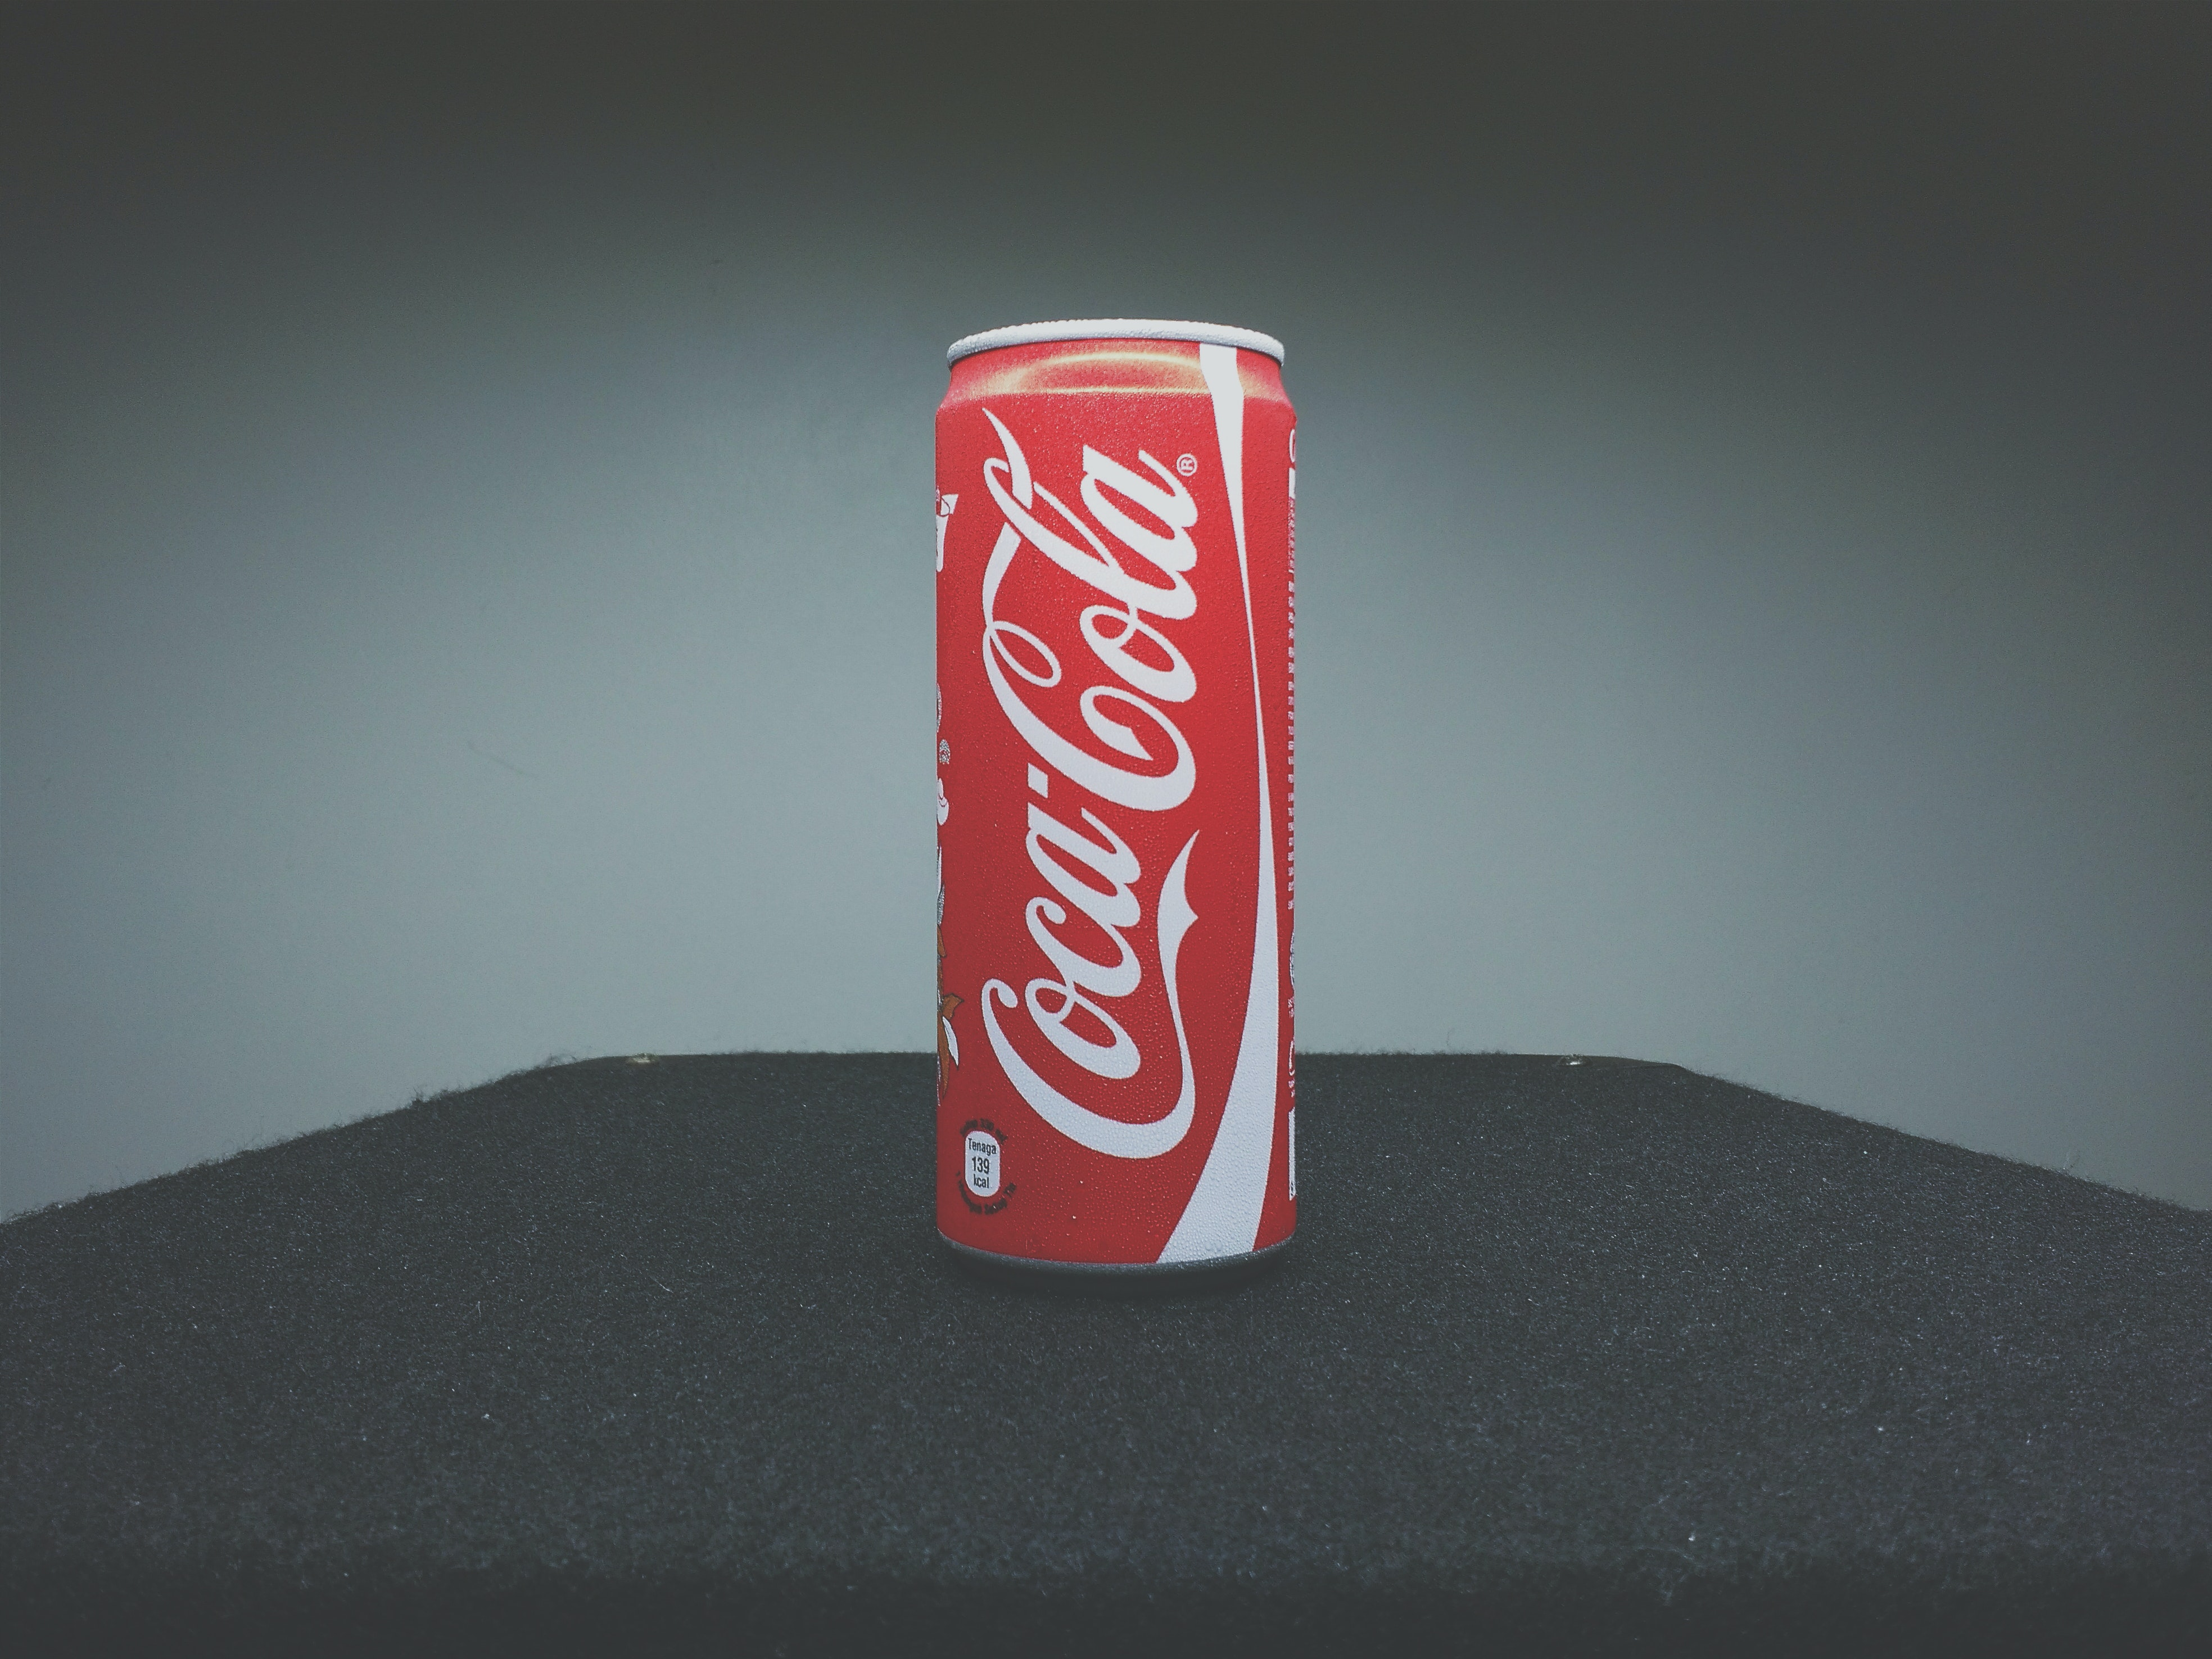 Drug Store Drink Coca Cola Signage on Gray Wooden Wall ...